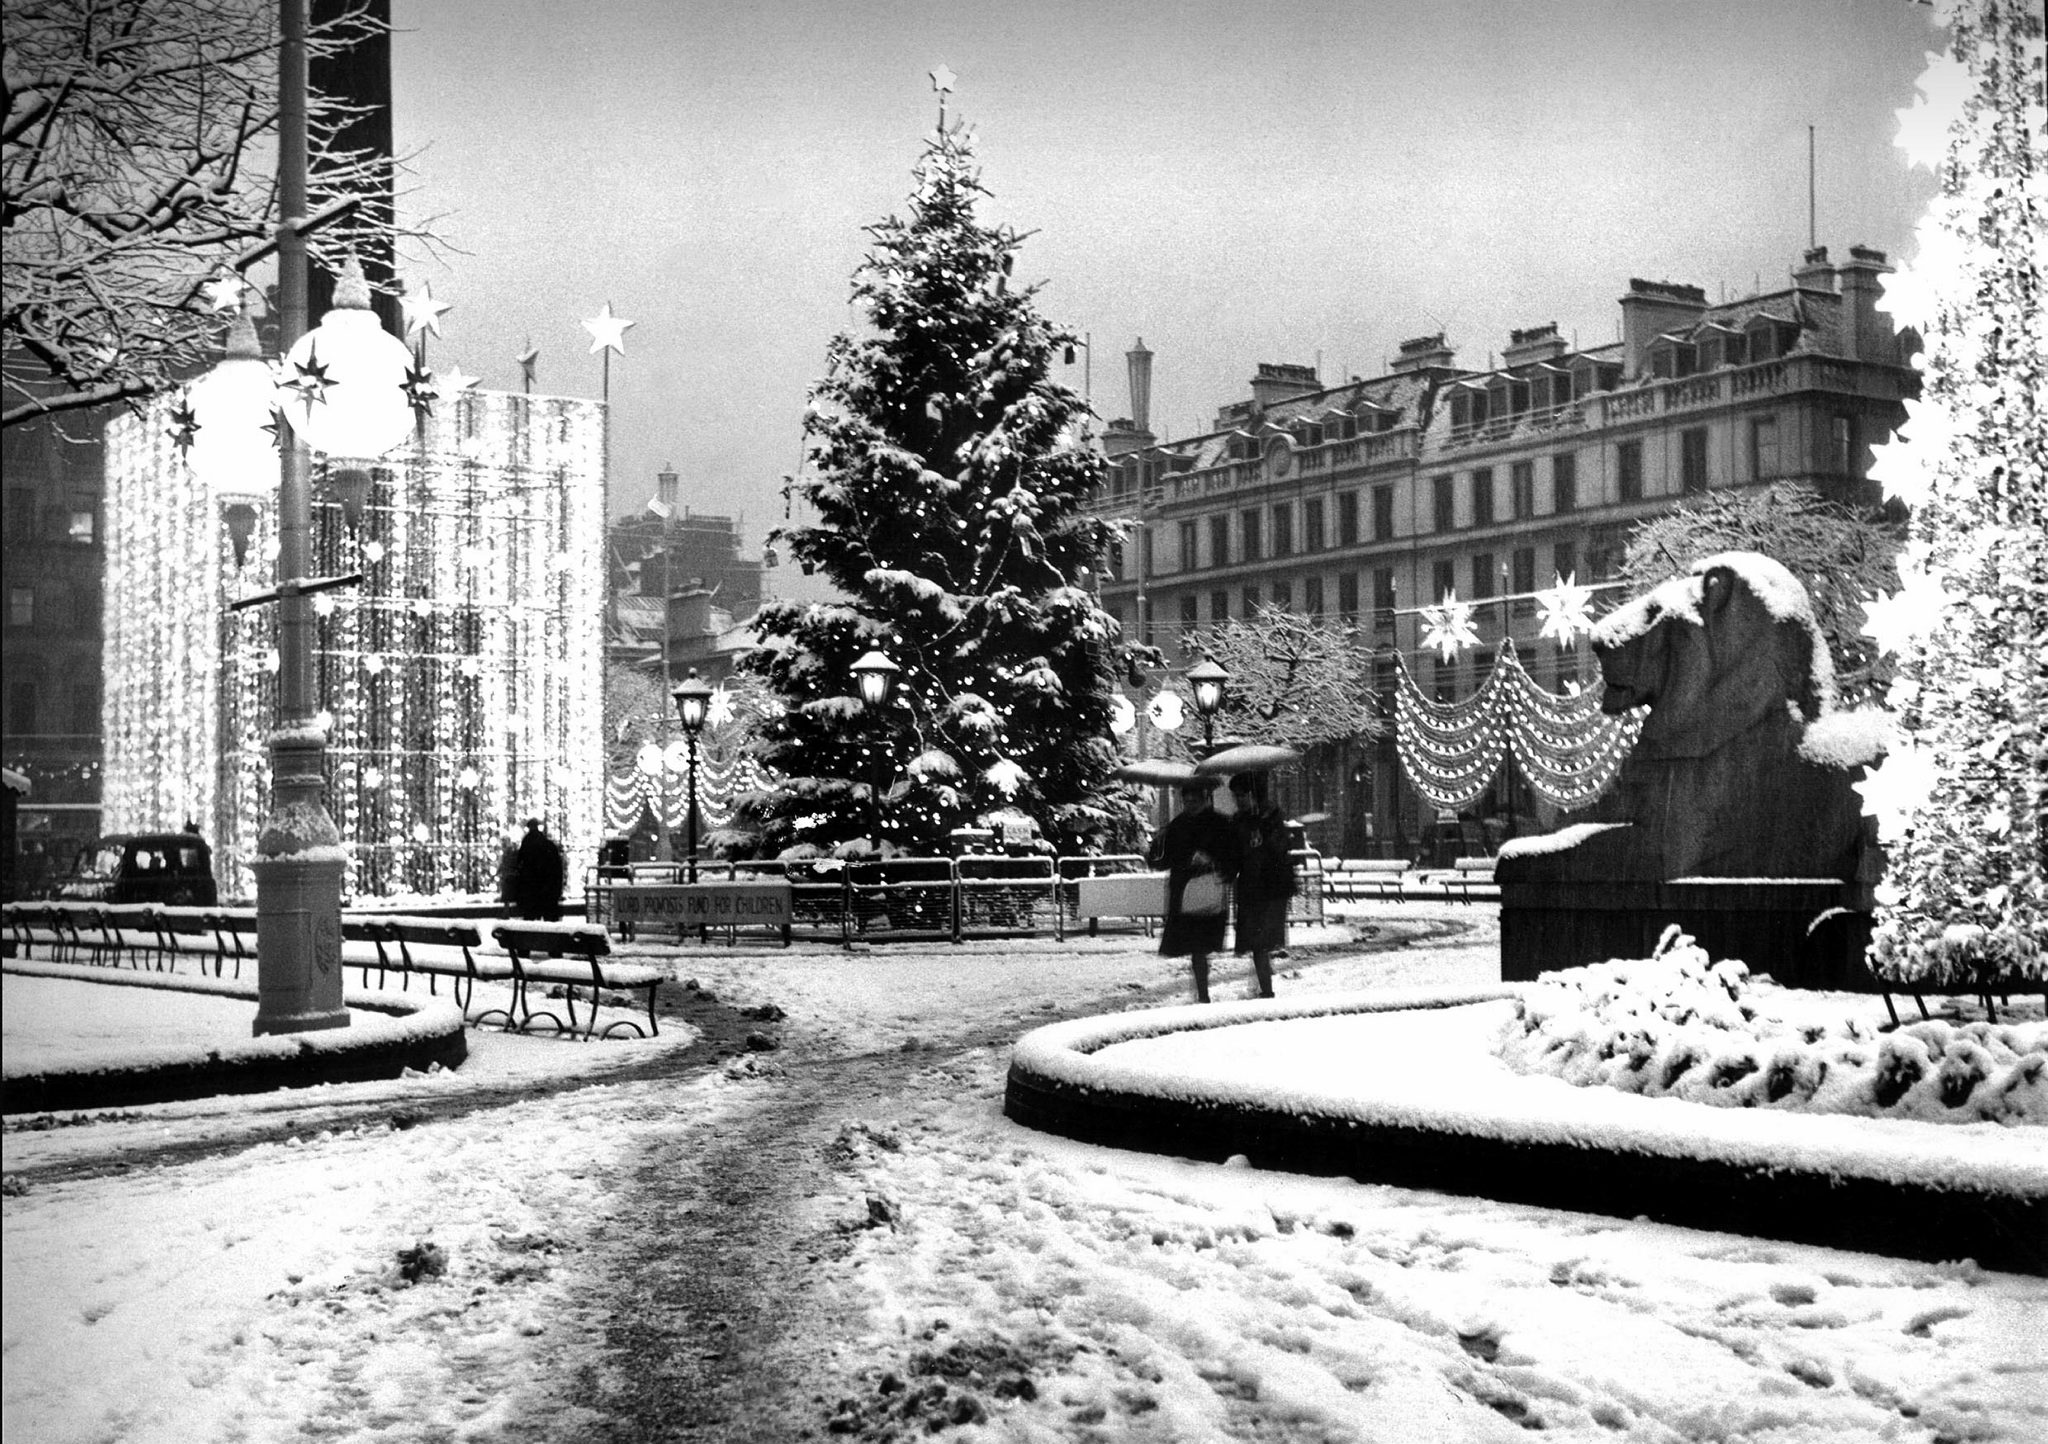 Stunning old photographs of Glasgow at Christmas to get you in the festive spirit